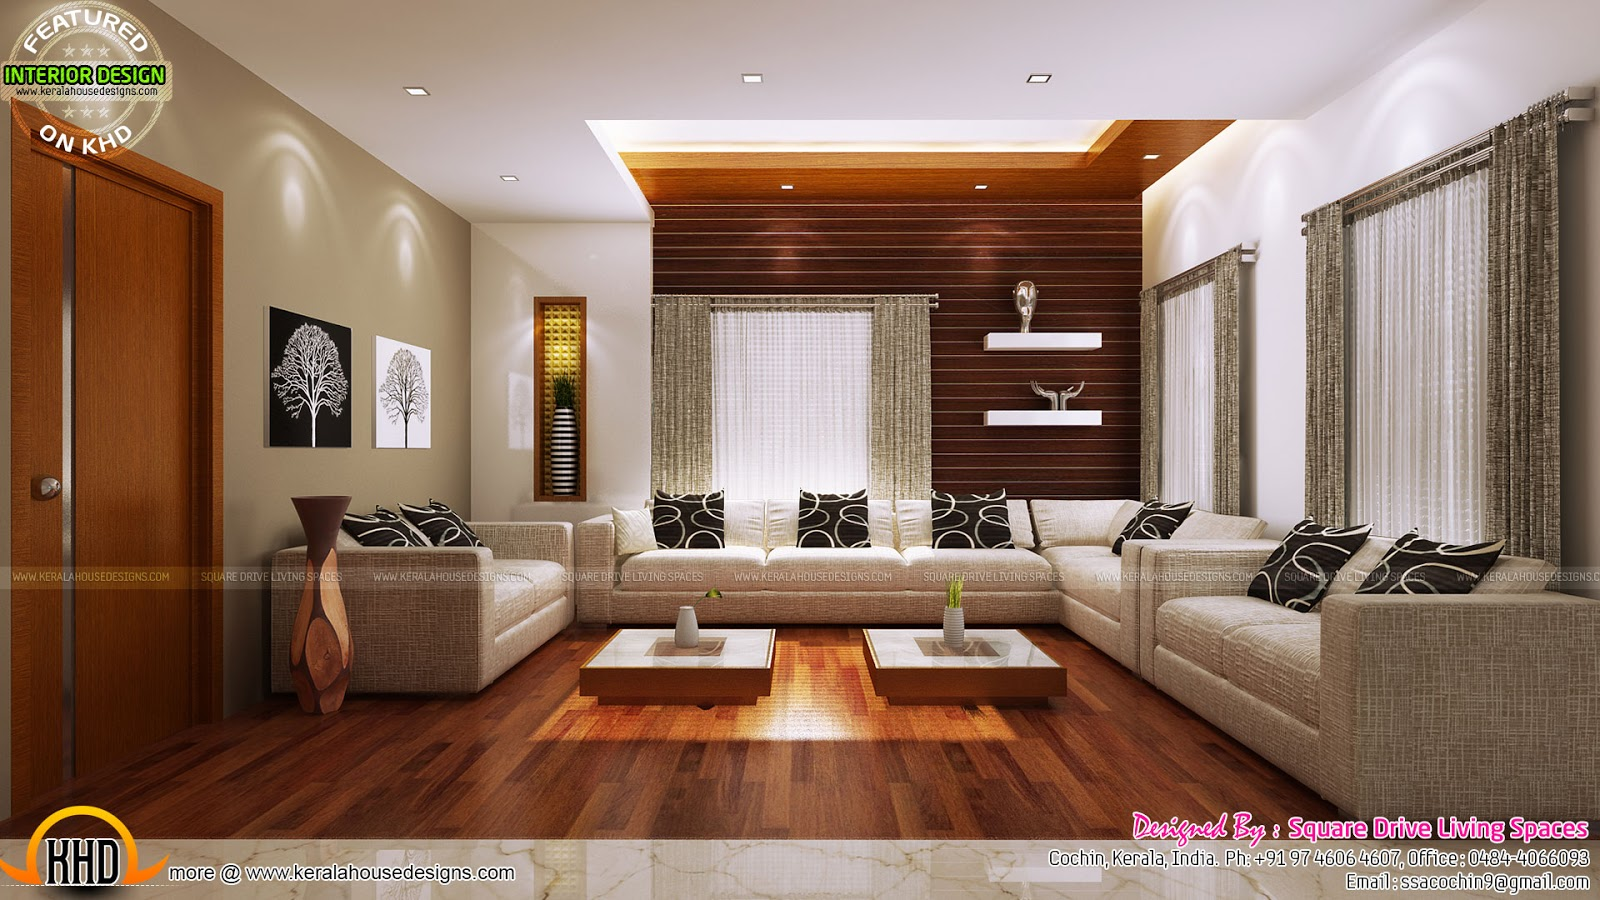 Homes Interior Designs Excellent Kerala Interior Design Kerala Home Design And